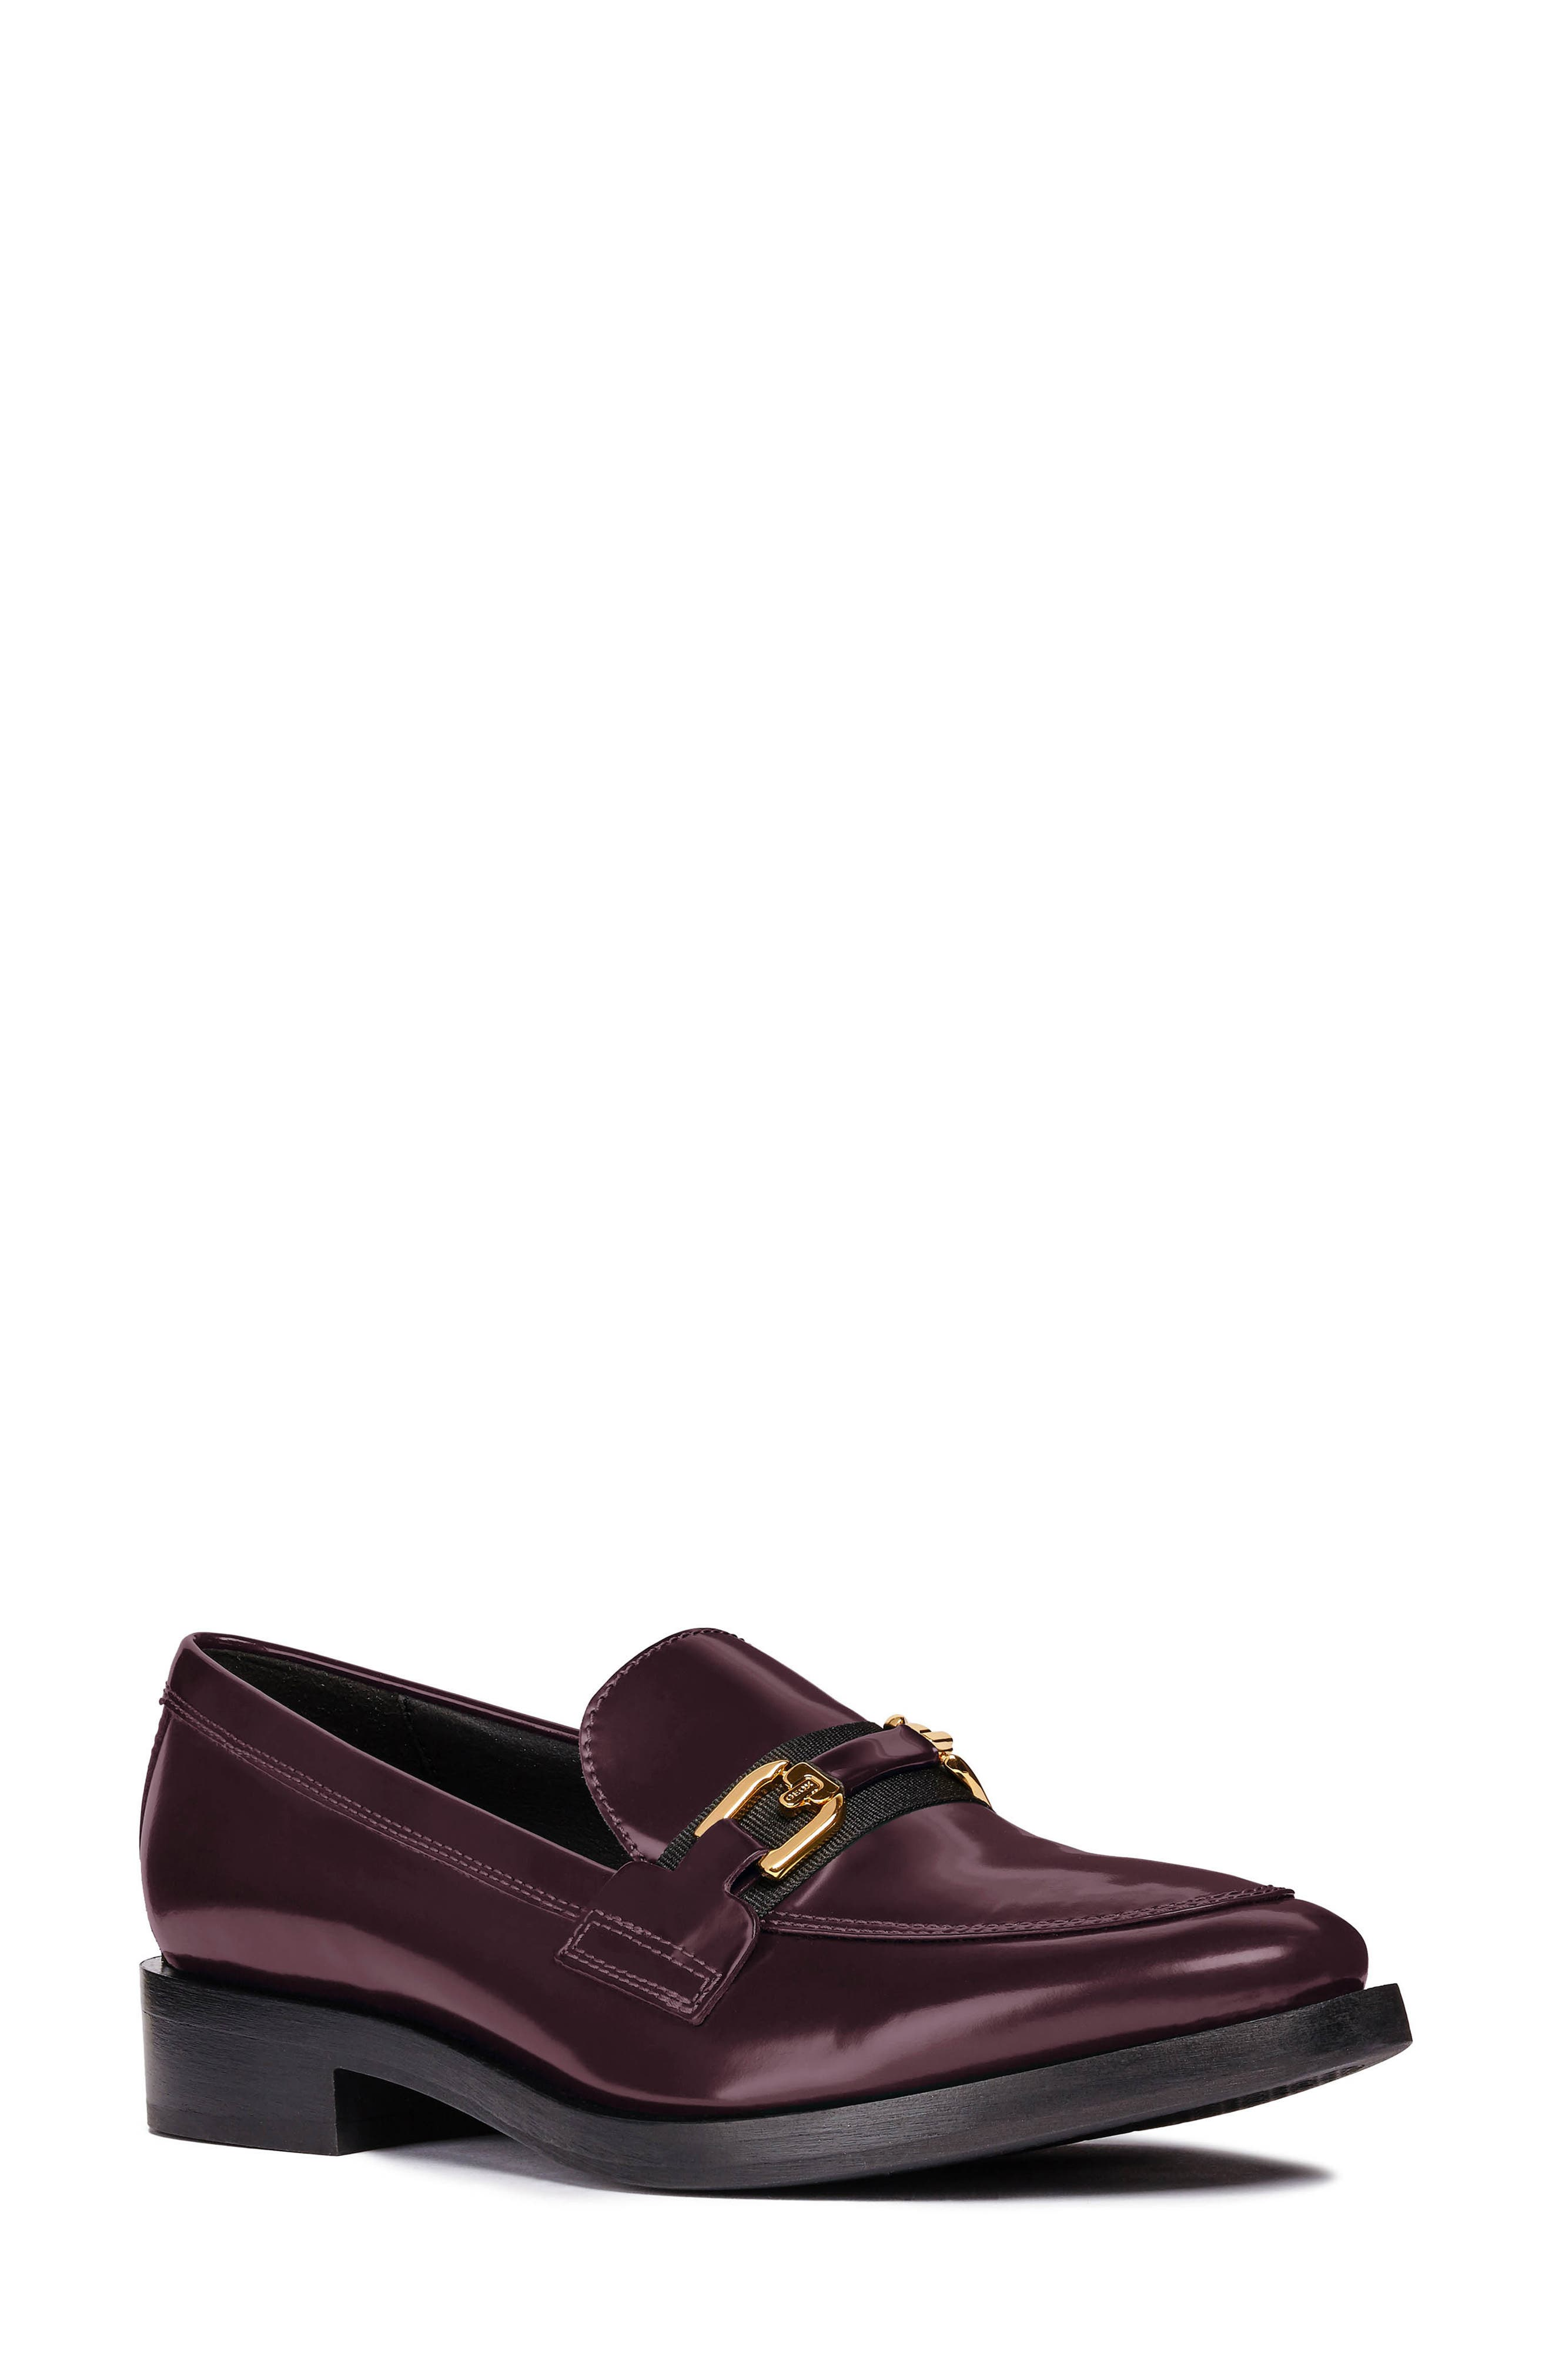 Brogue Loafer,                             Main thumbnail 1, color,                             BURGUNDY/ BLACK LEATHER